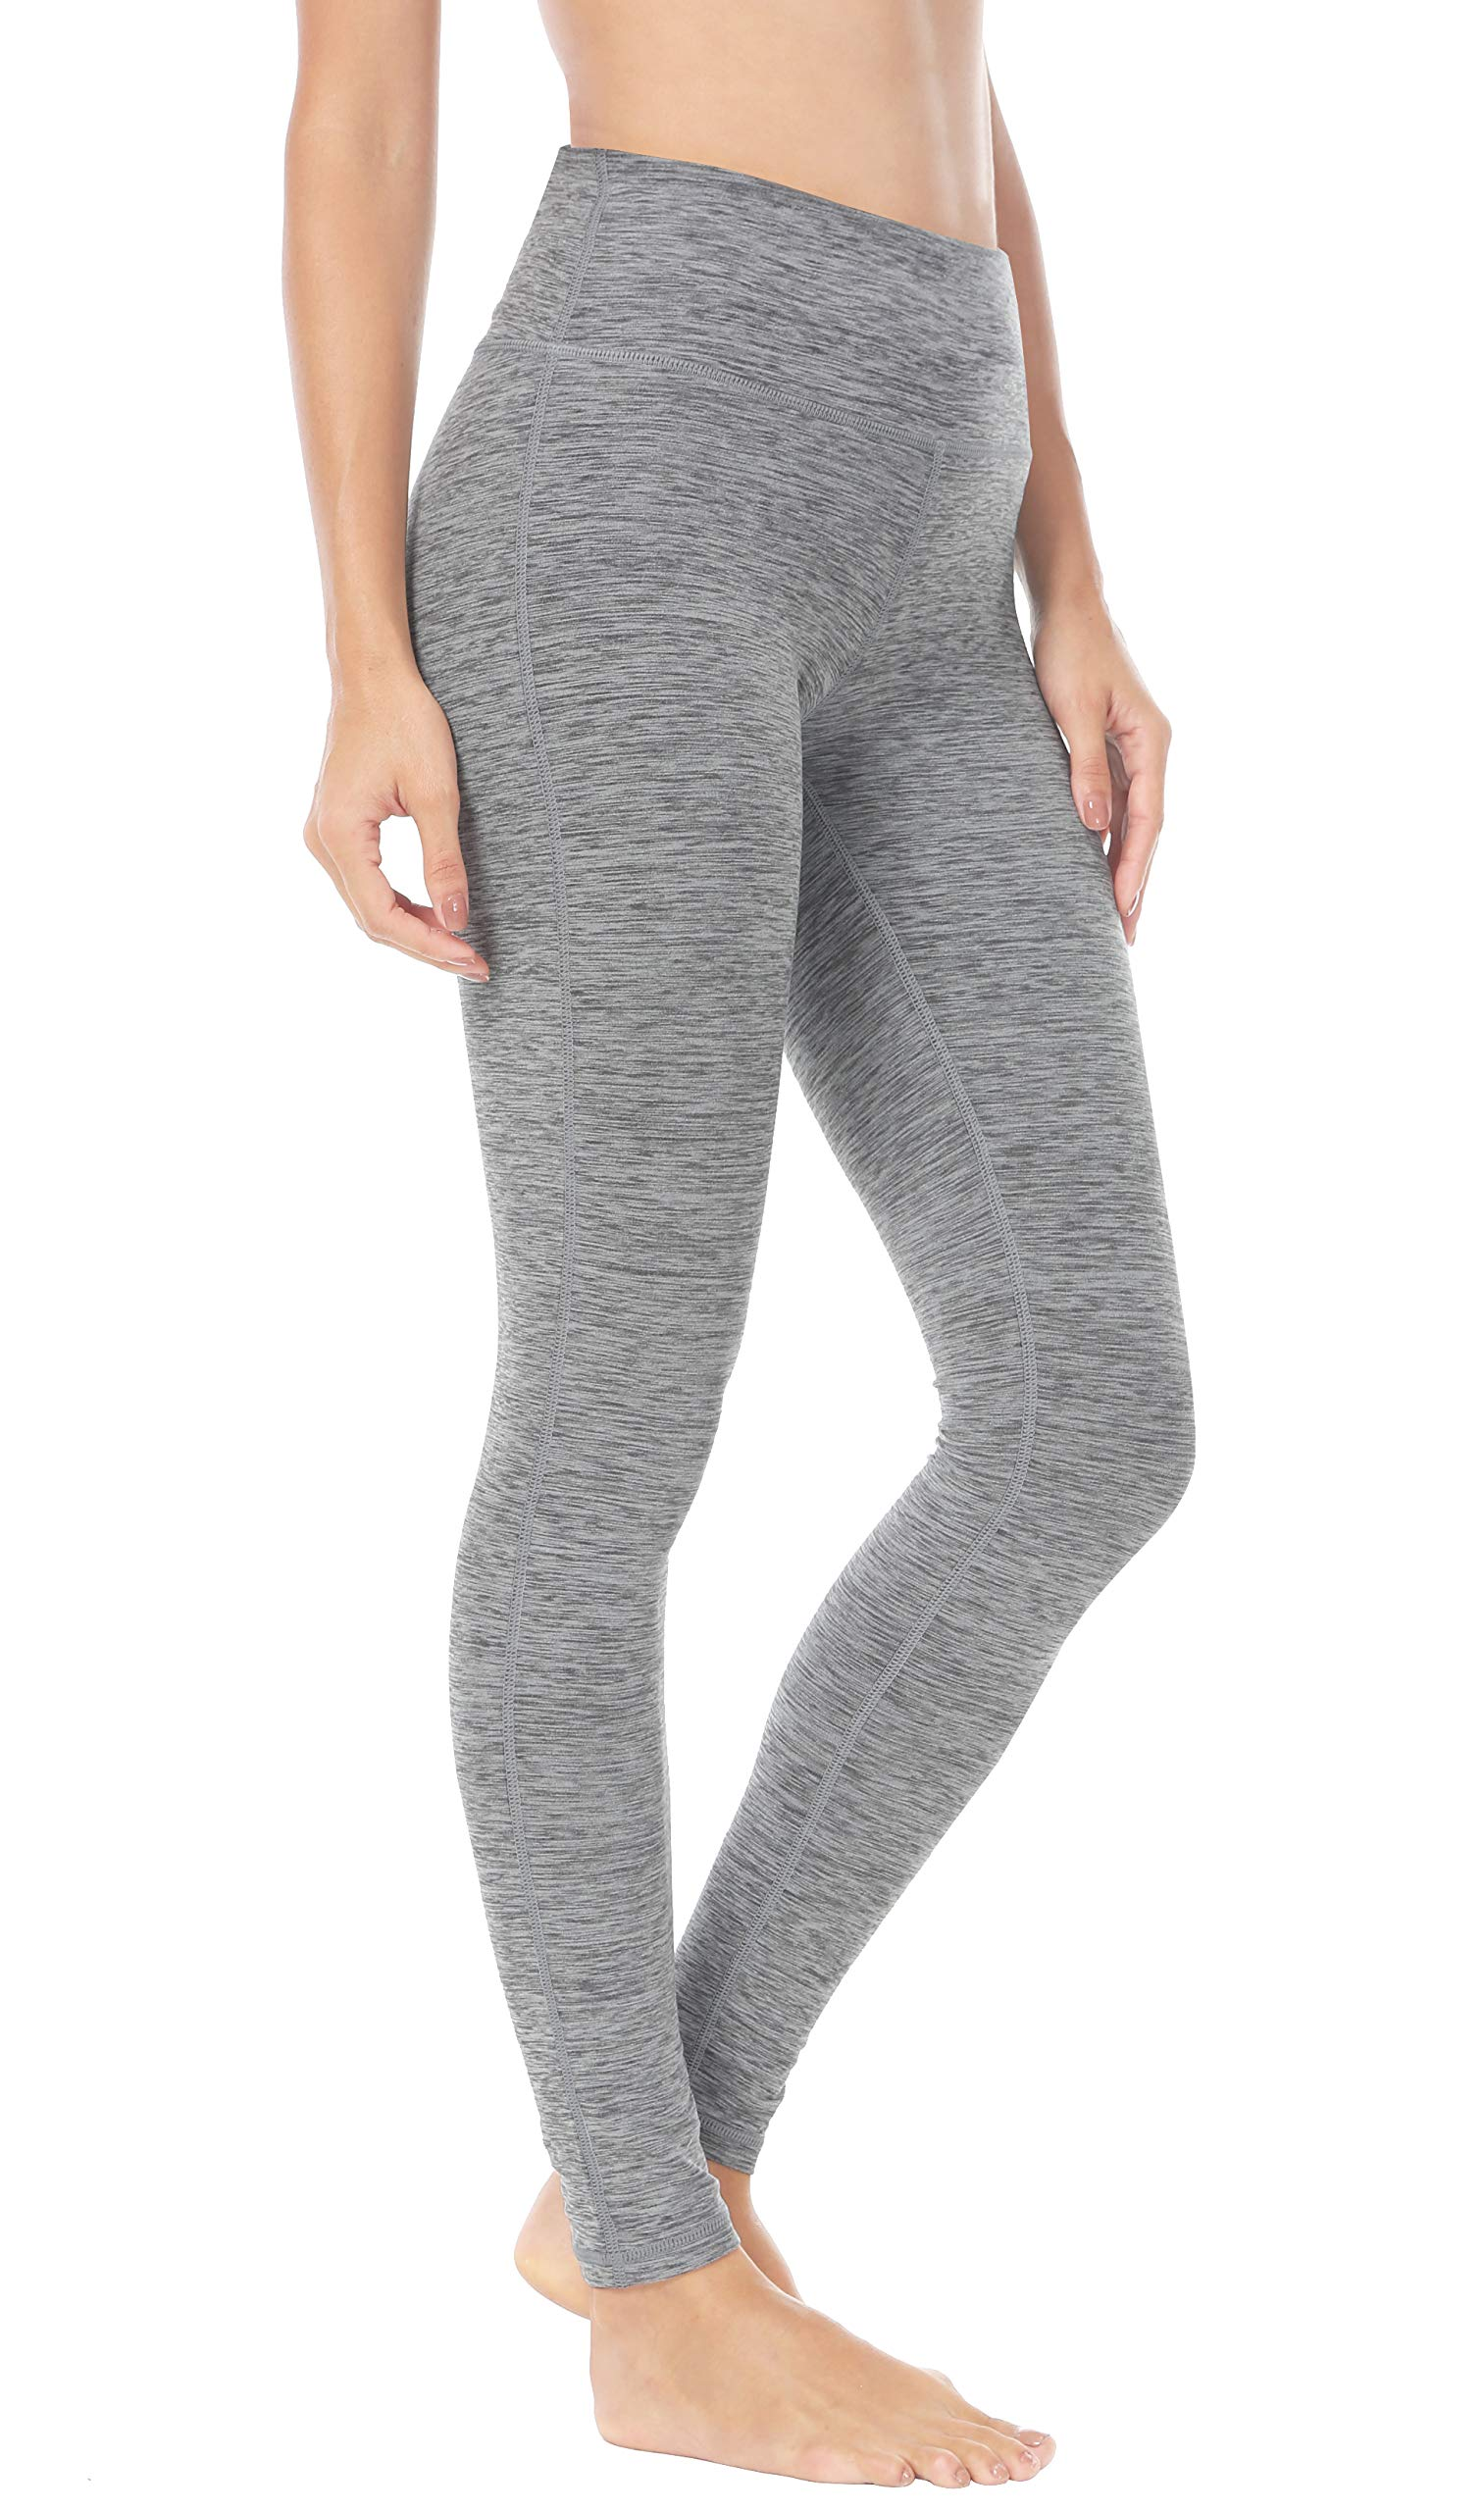 Queenie Ke Women High Waist Hidden Pockets Sport Legging Yoga Pants Running Tights Size L Color Space Dye Grey2